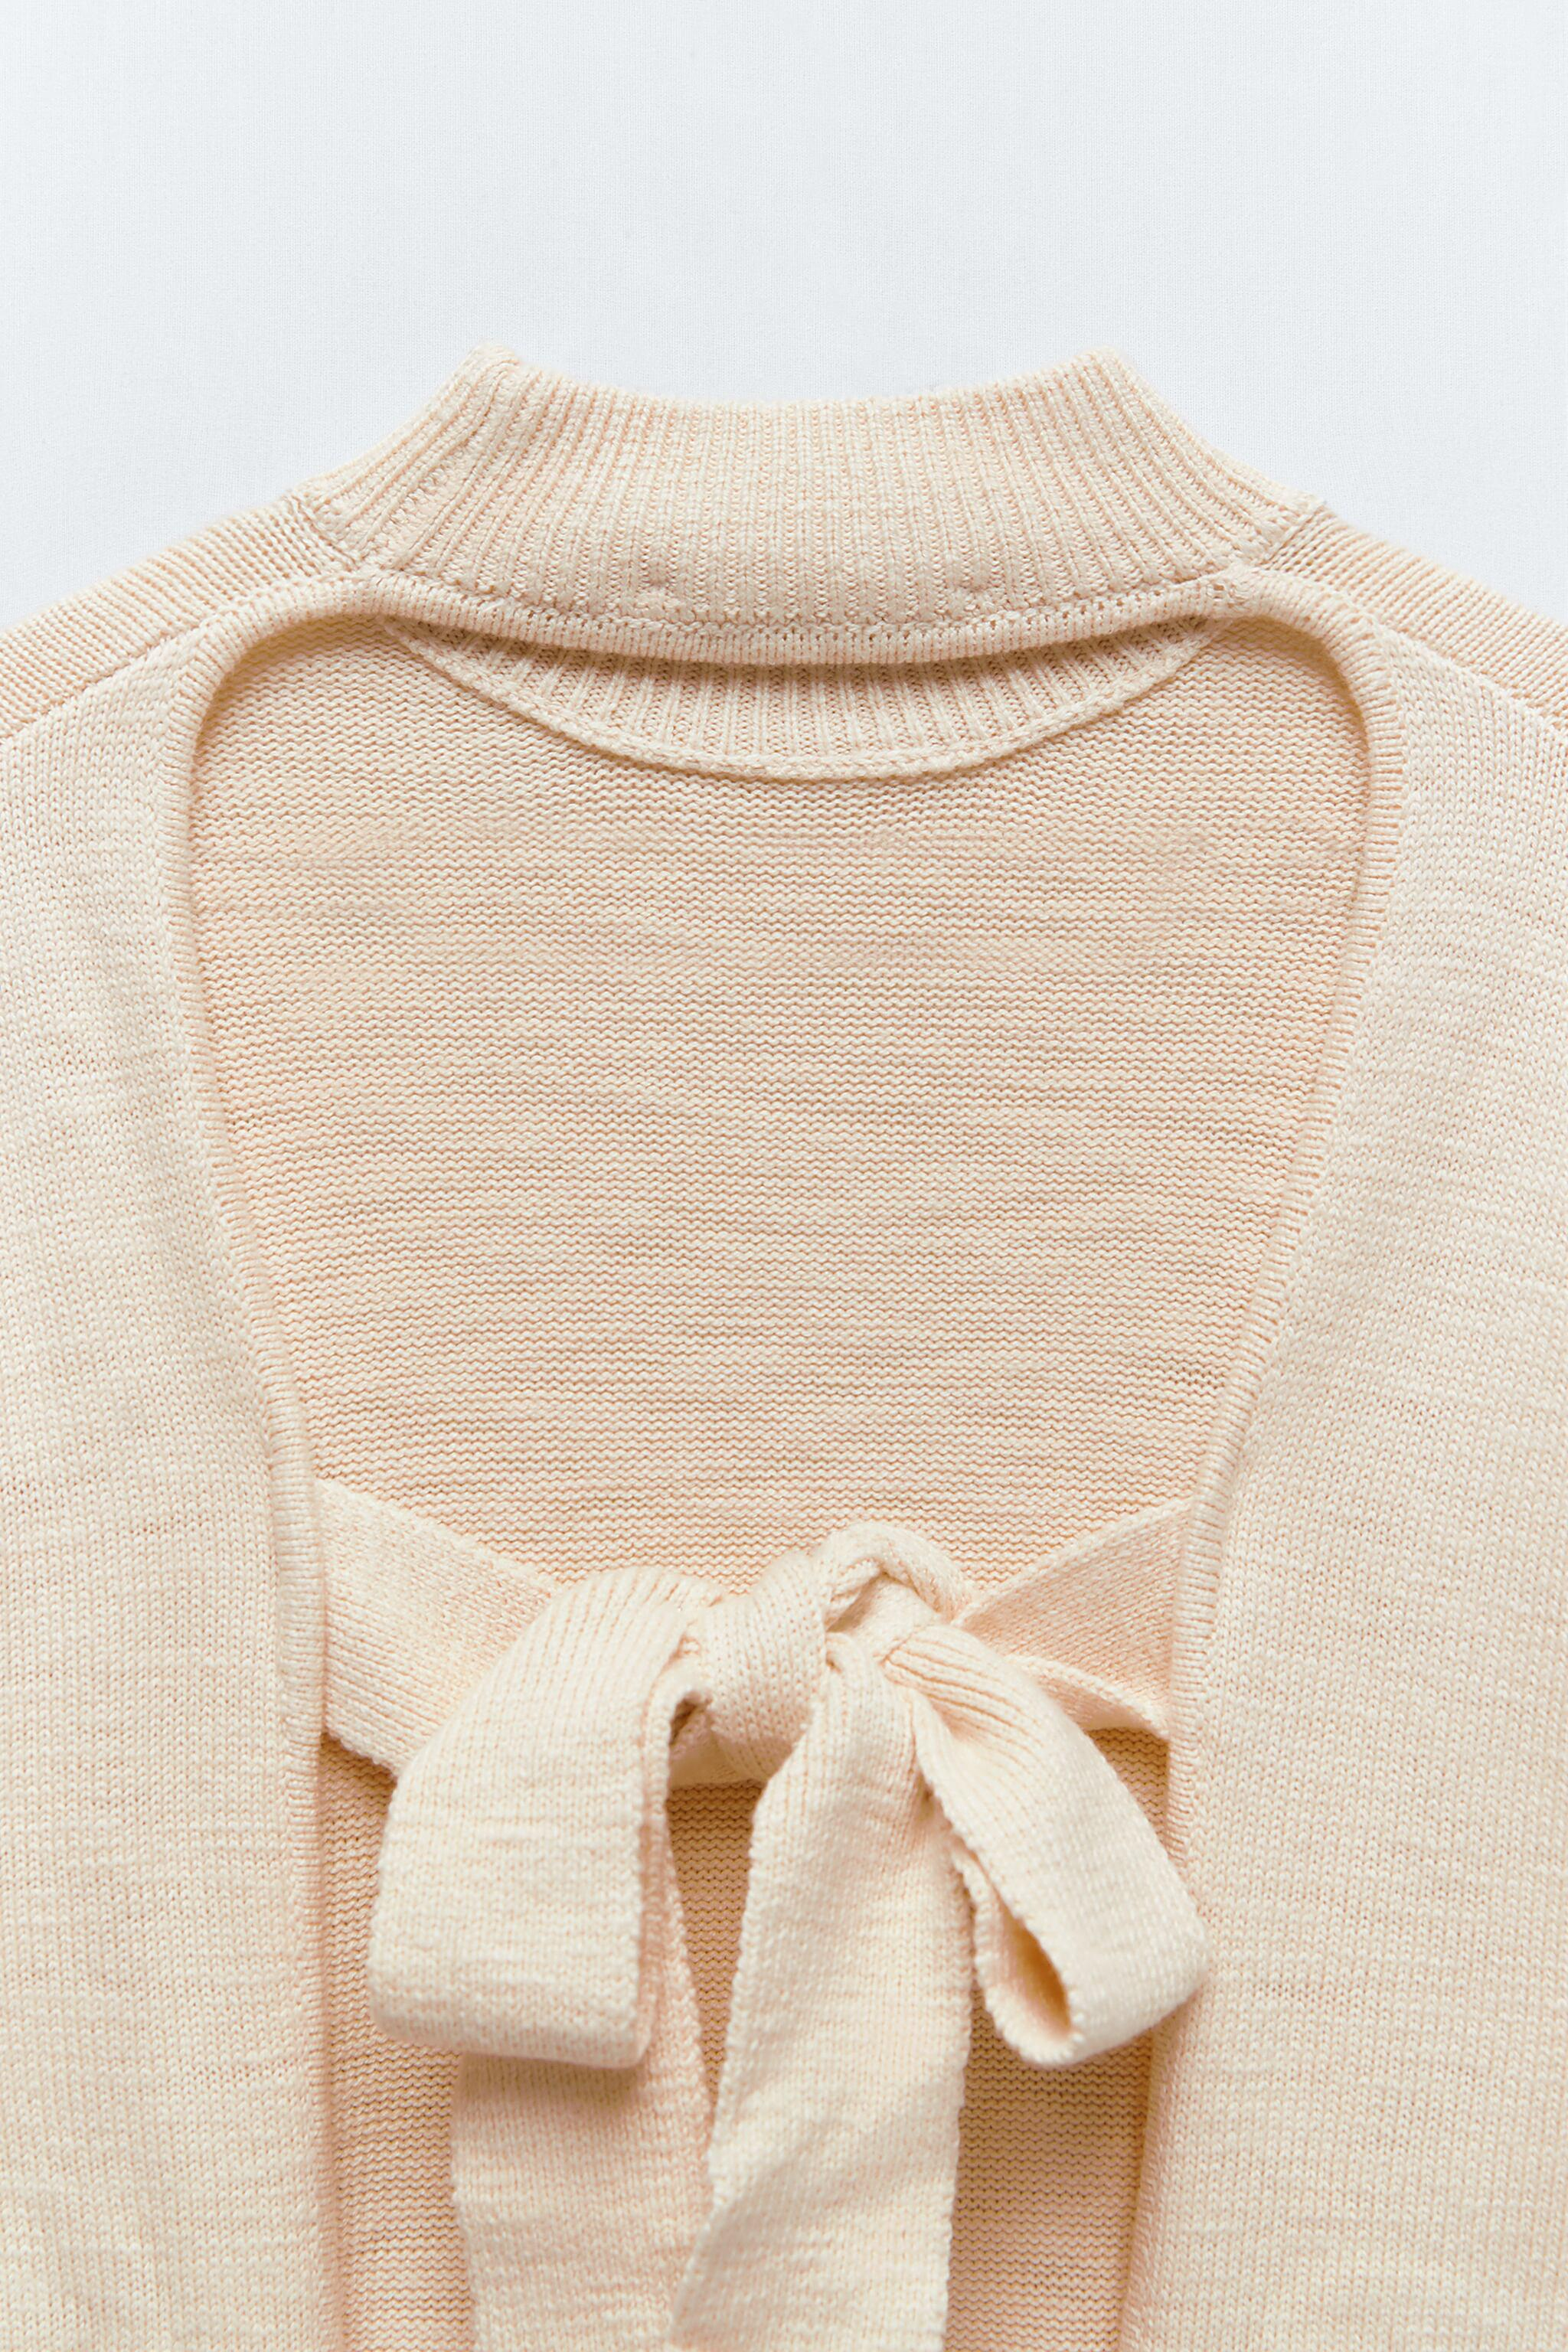 KNIT SWEATER WITH BACK OPENING 7